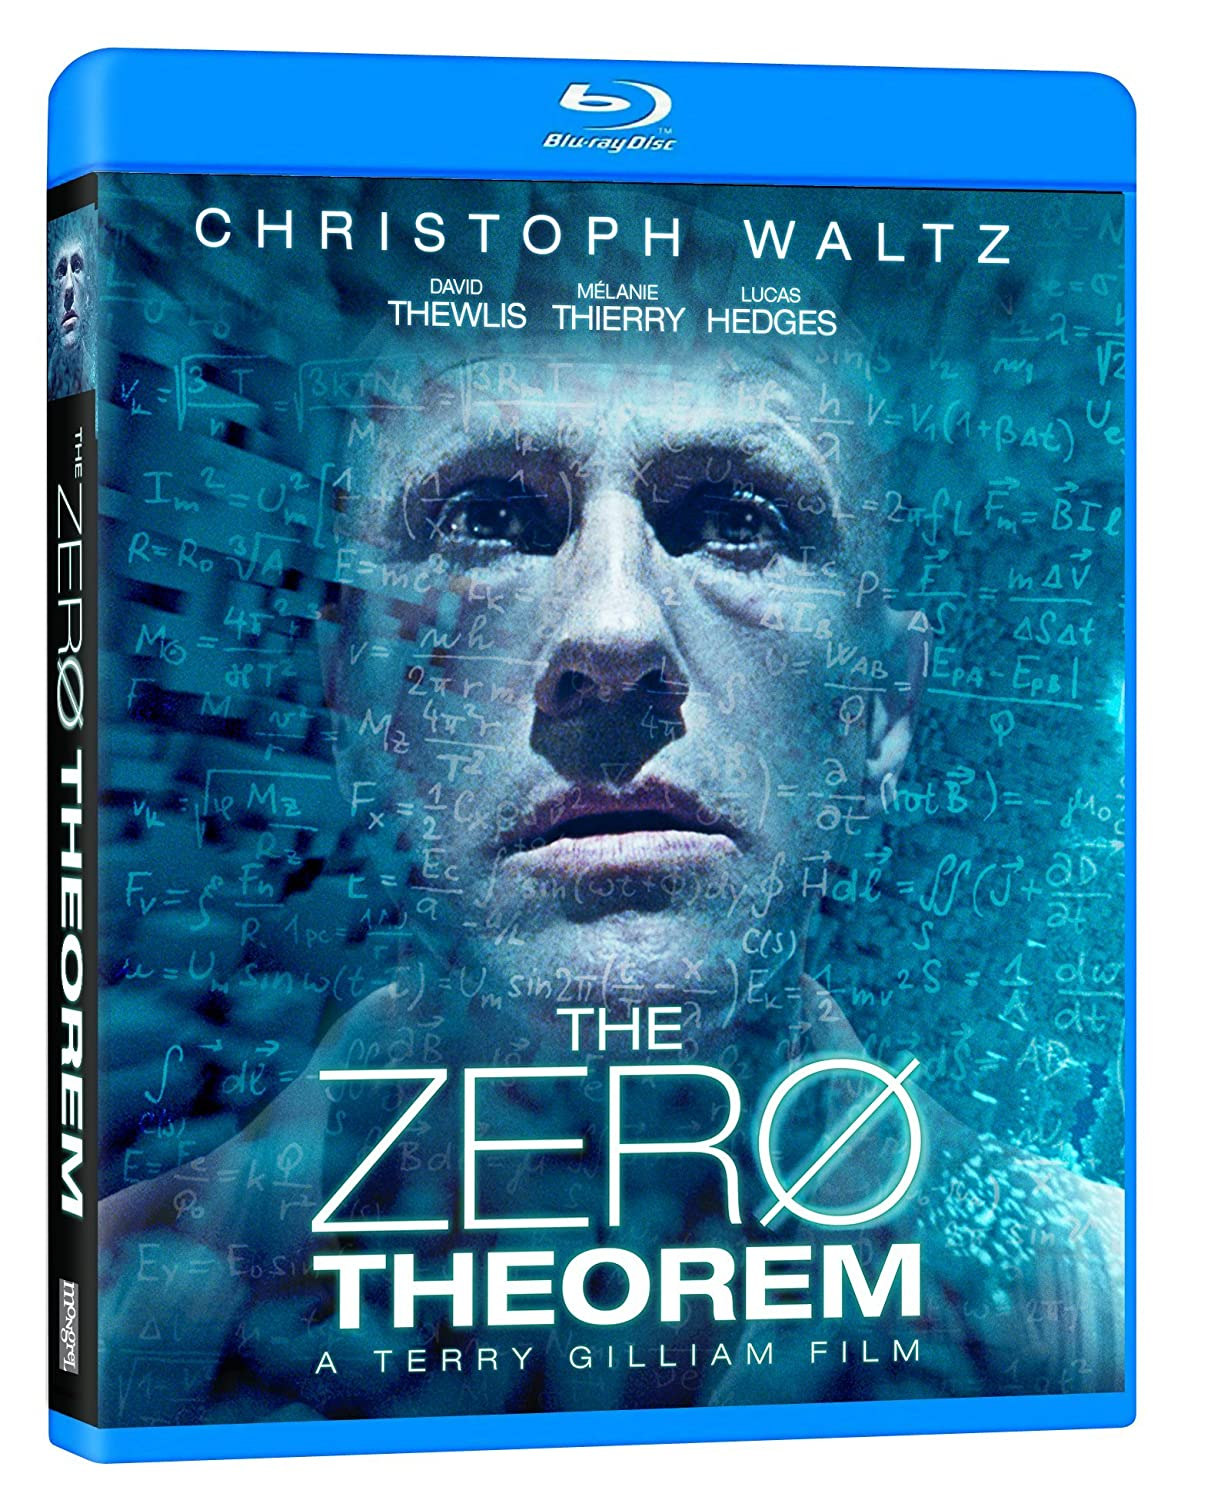 The Zero Theorem (Le Théorème zéro) [Blu-ray] (Bilingual) Christoph Waltz David Thewlis Ben Whishaw Terry Gilliam